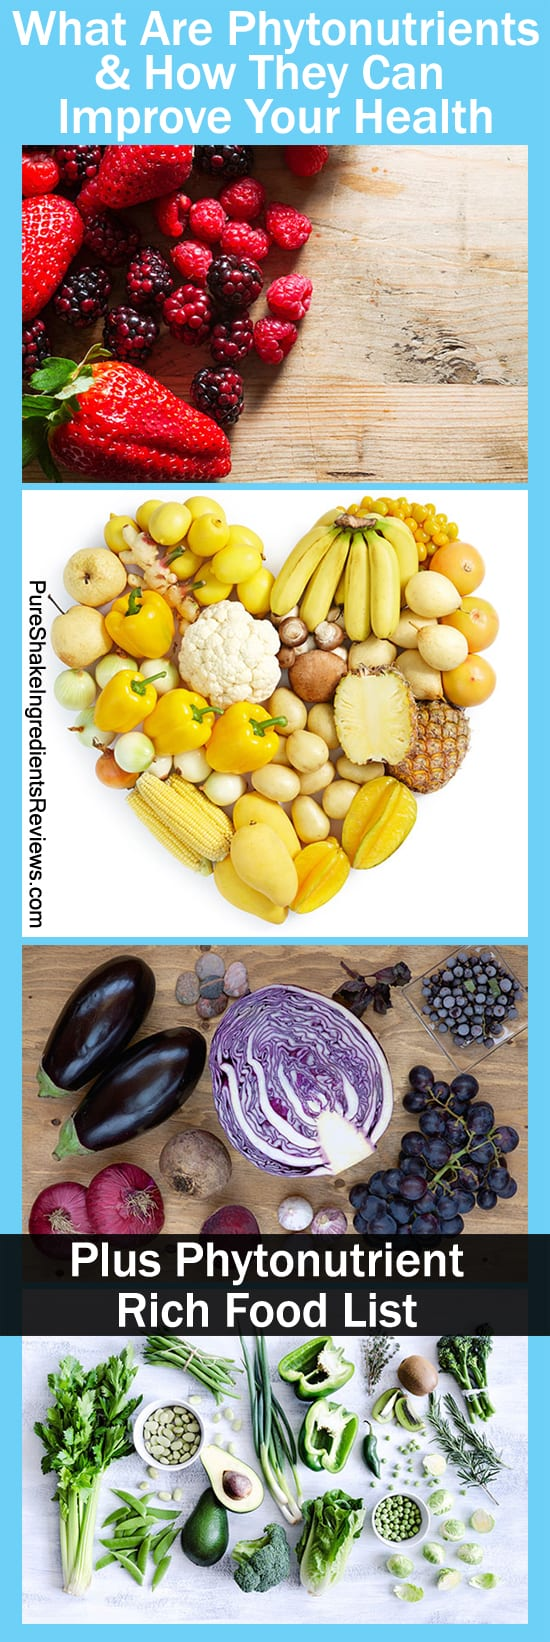 How beneficial are phytonutrients? Find out how they can improve your health. Plus phytonutrient rich food list. http://www.pureshakeingredientsreviews.com/what-are-phytonutrients